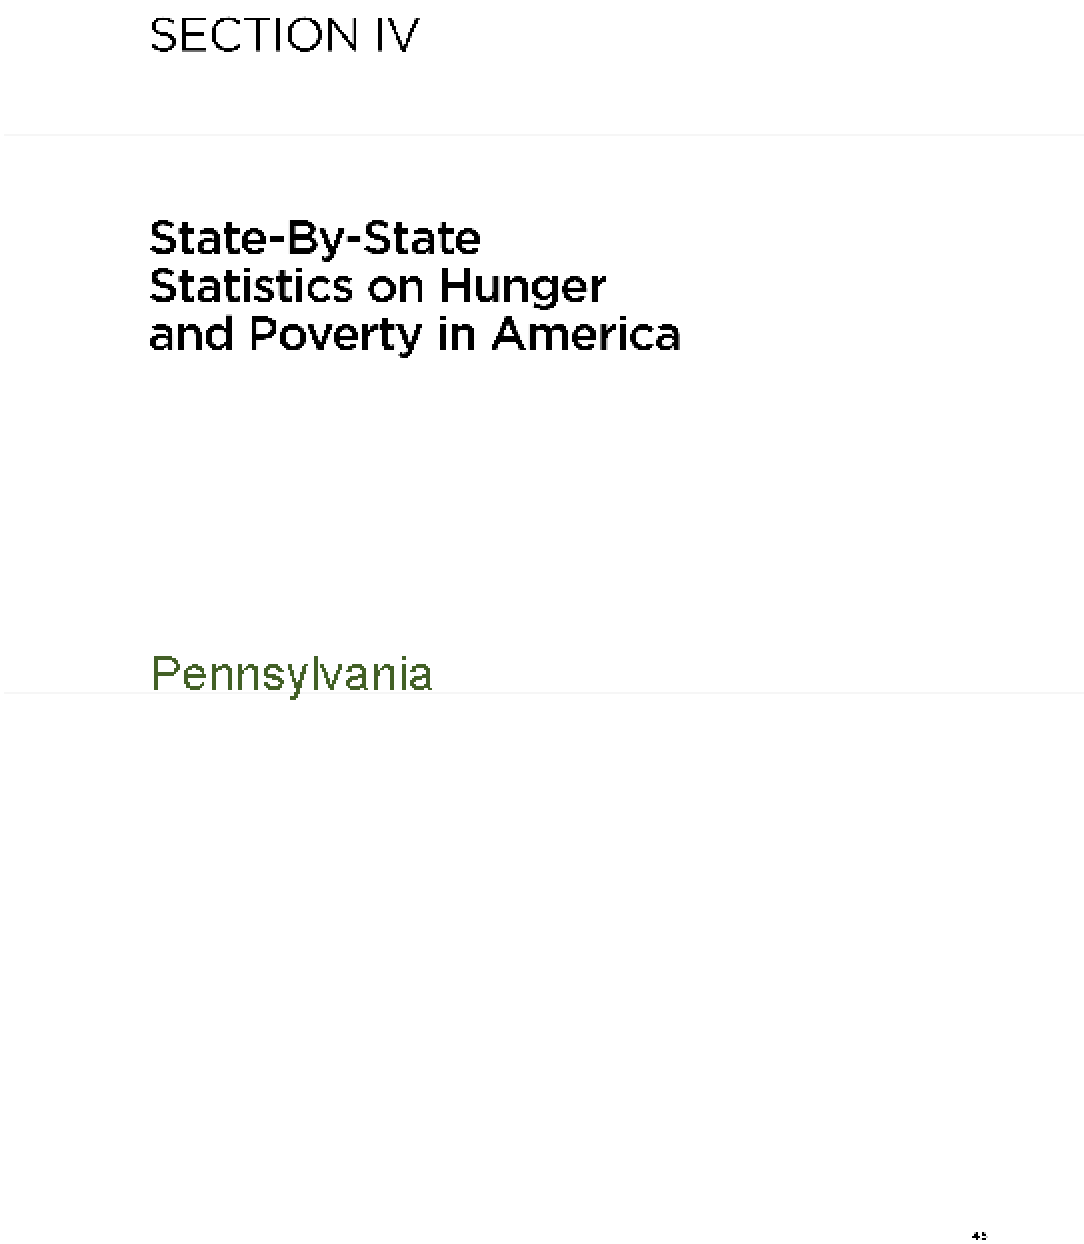 The Almanac of Hunger and Poverty in America 2010: Pennsylvania